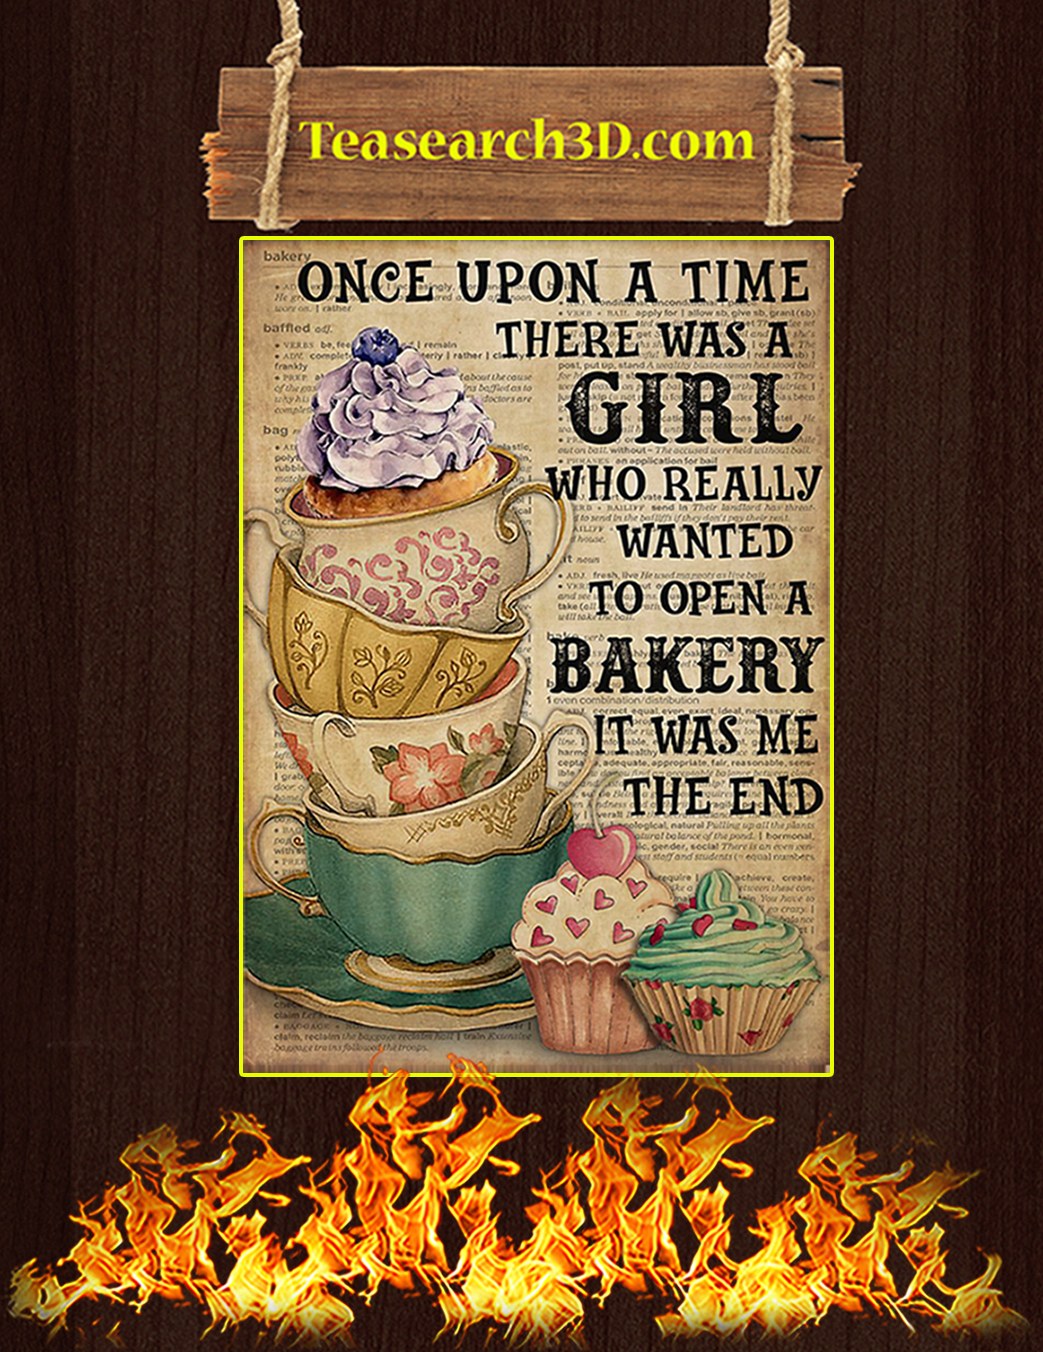 There was a girl who really wanted to open a bakery poster A1